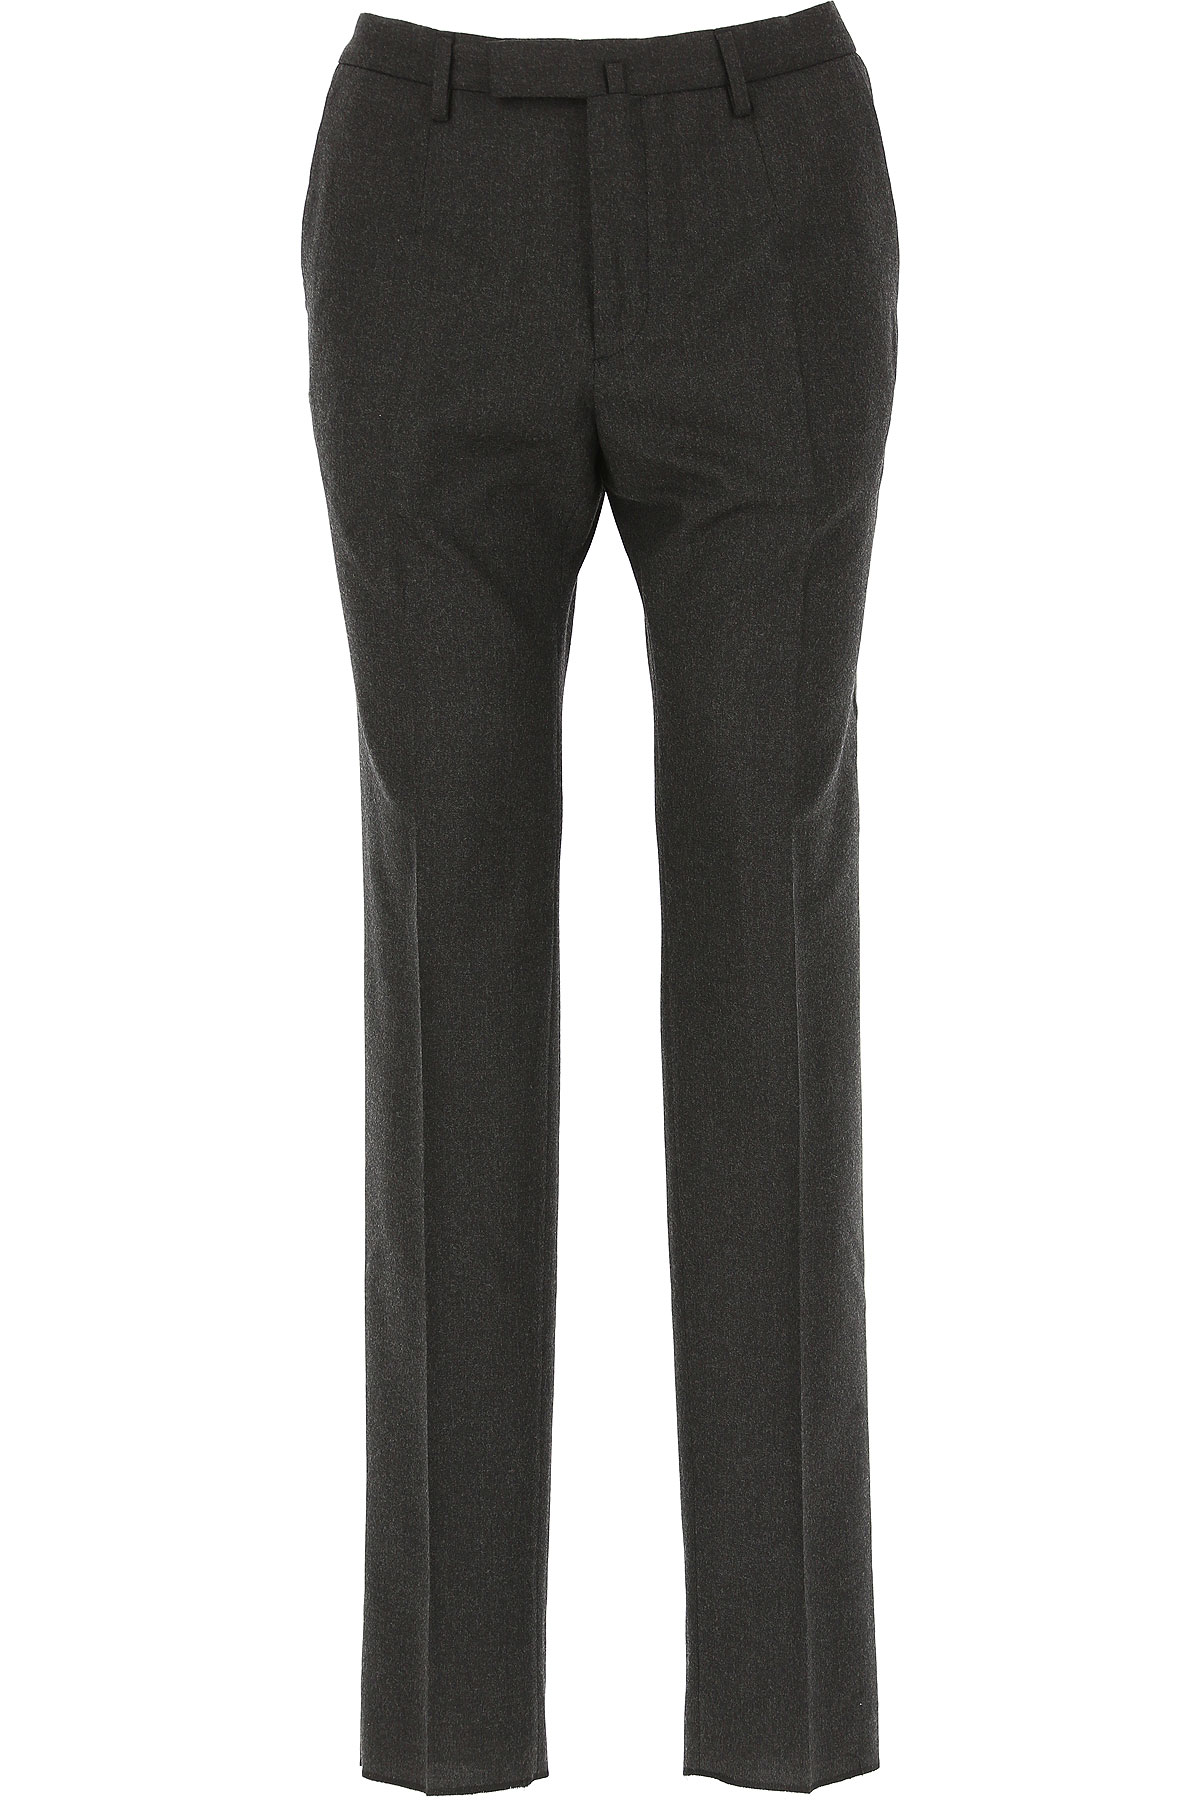 Image of Incotex Pants for Men, Anthracite Grey, Wool, 2017, 34 36